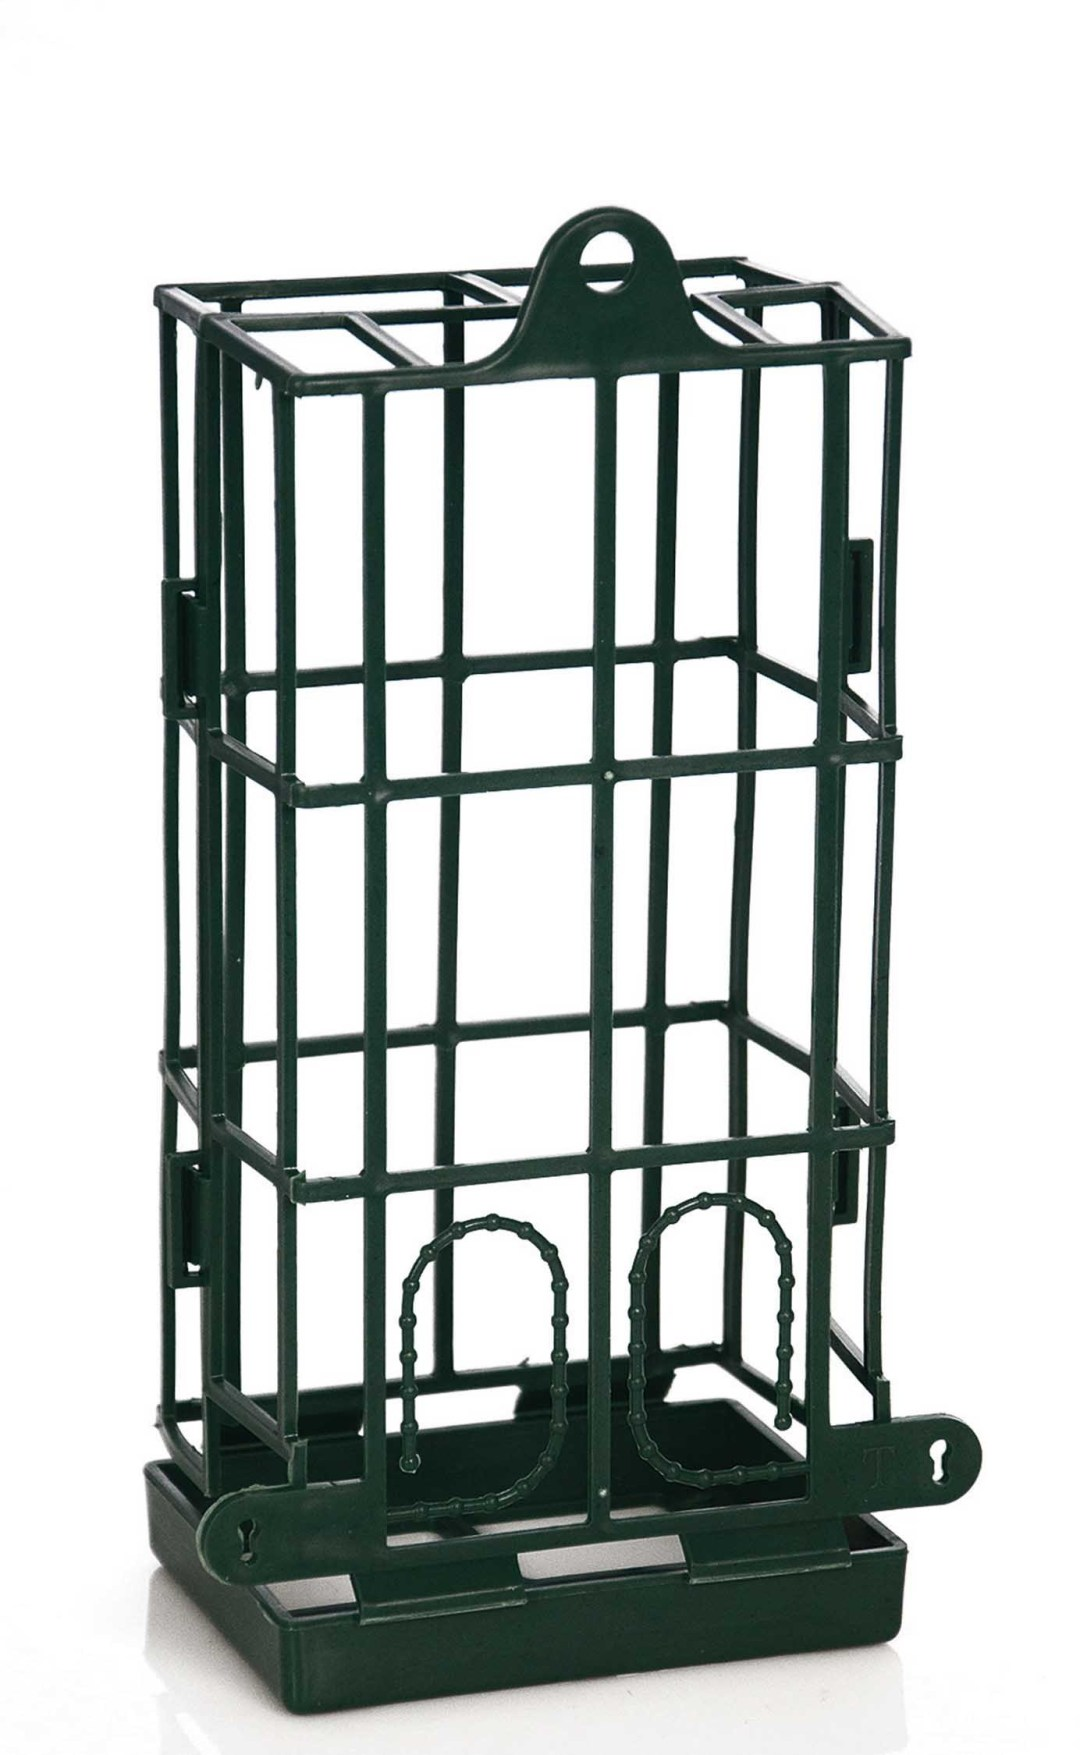 PL306G - Folding Plastic Cage For Oasis Block $34.95 each box | PL306G